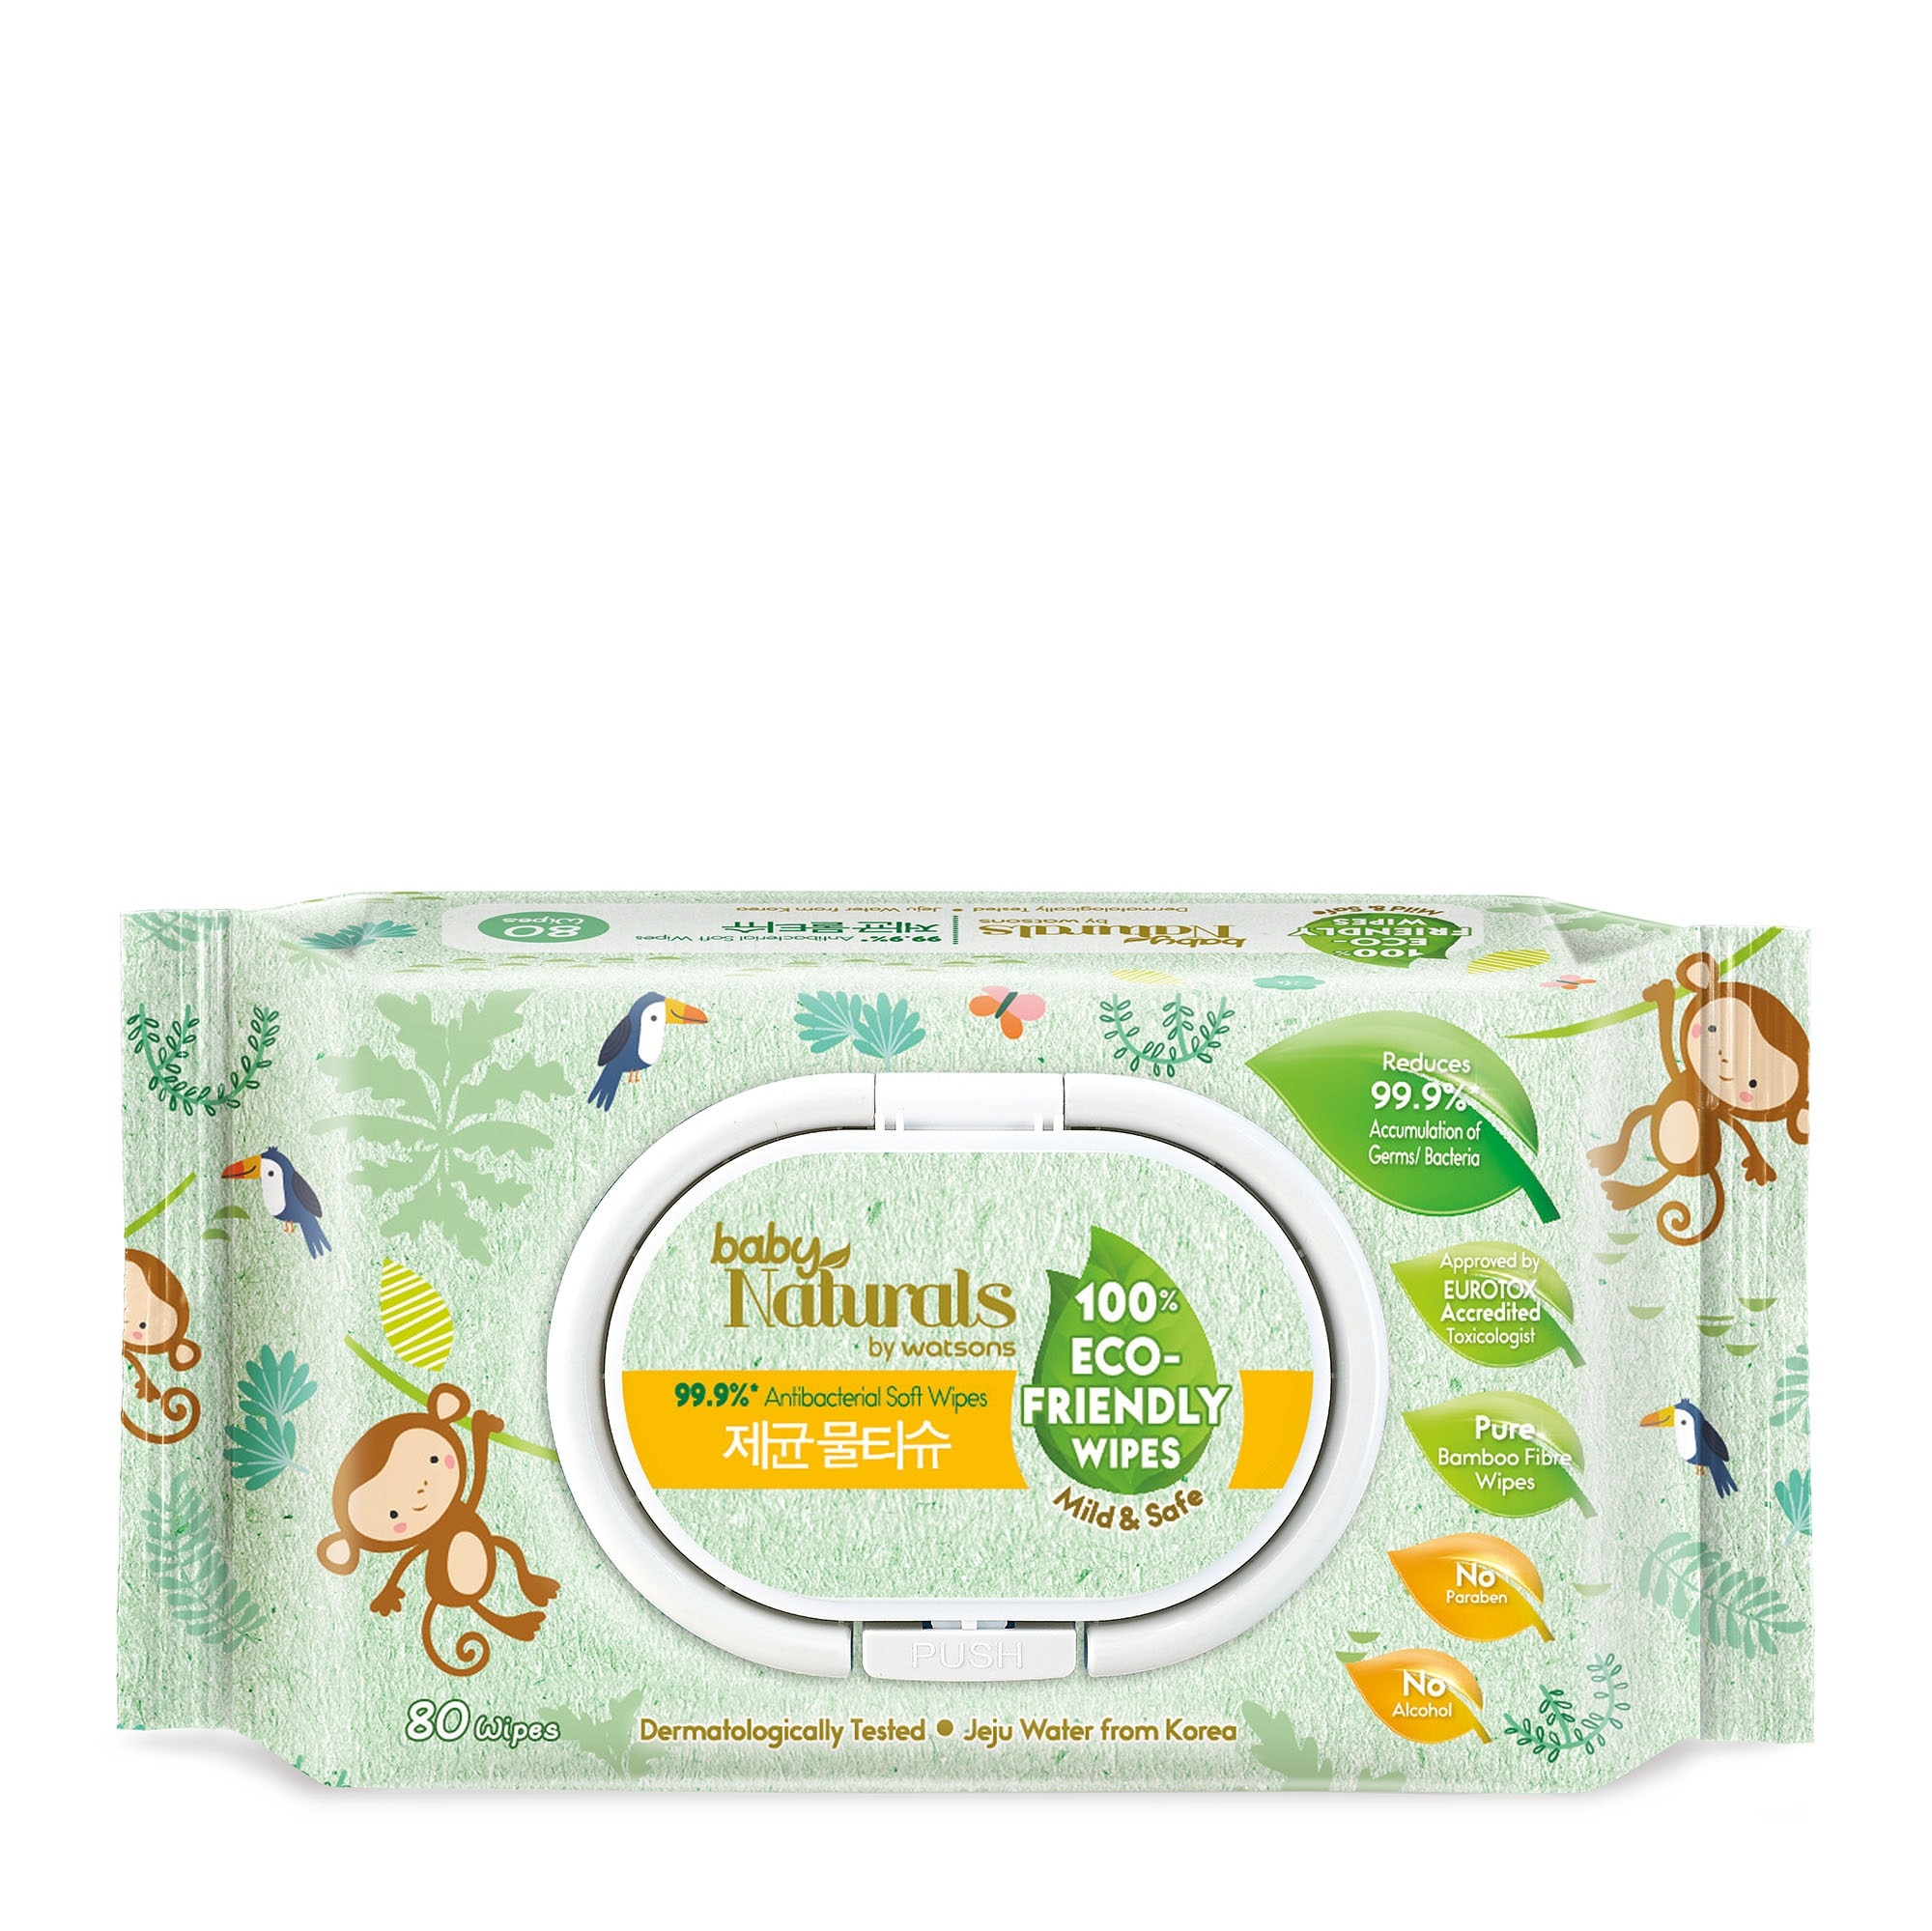 NATURALS WSBaby 99.9% Anribacterial Soft Wipes 80 sheets,Baby WipesNaturals By Watsons Baby